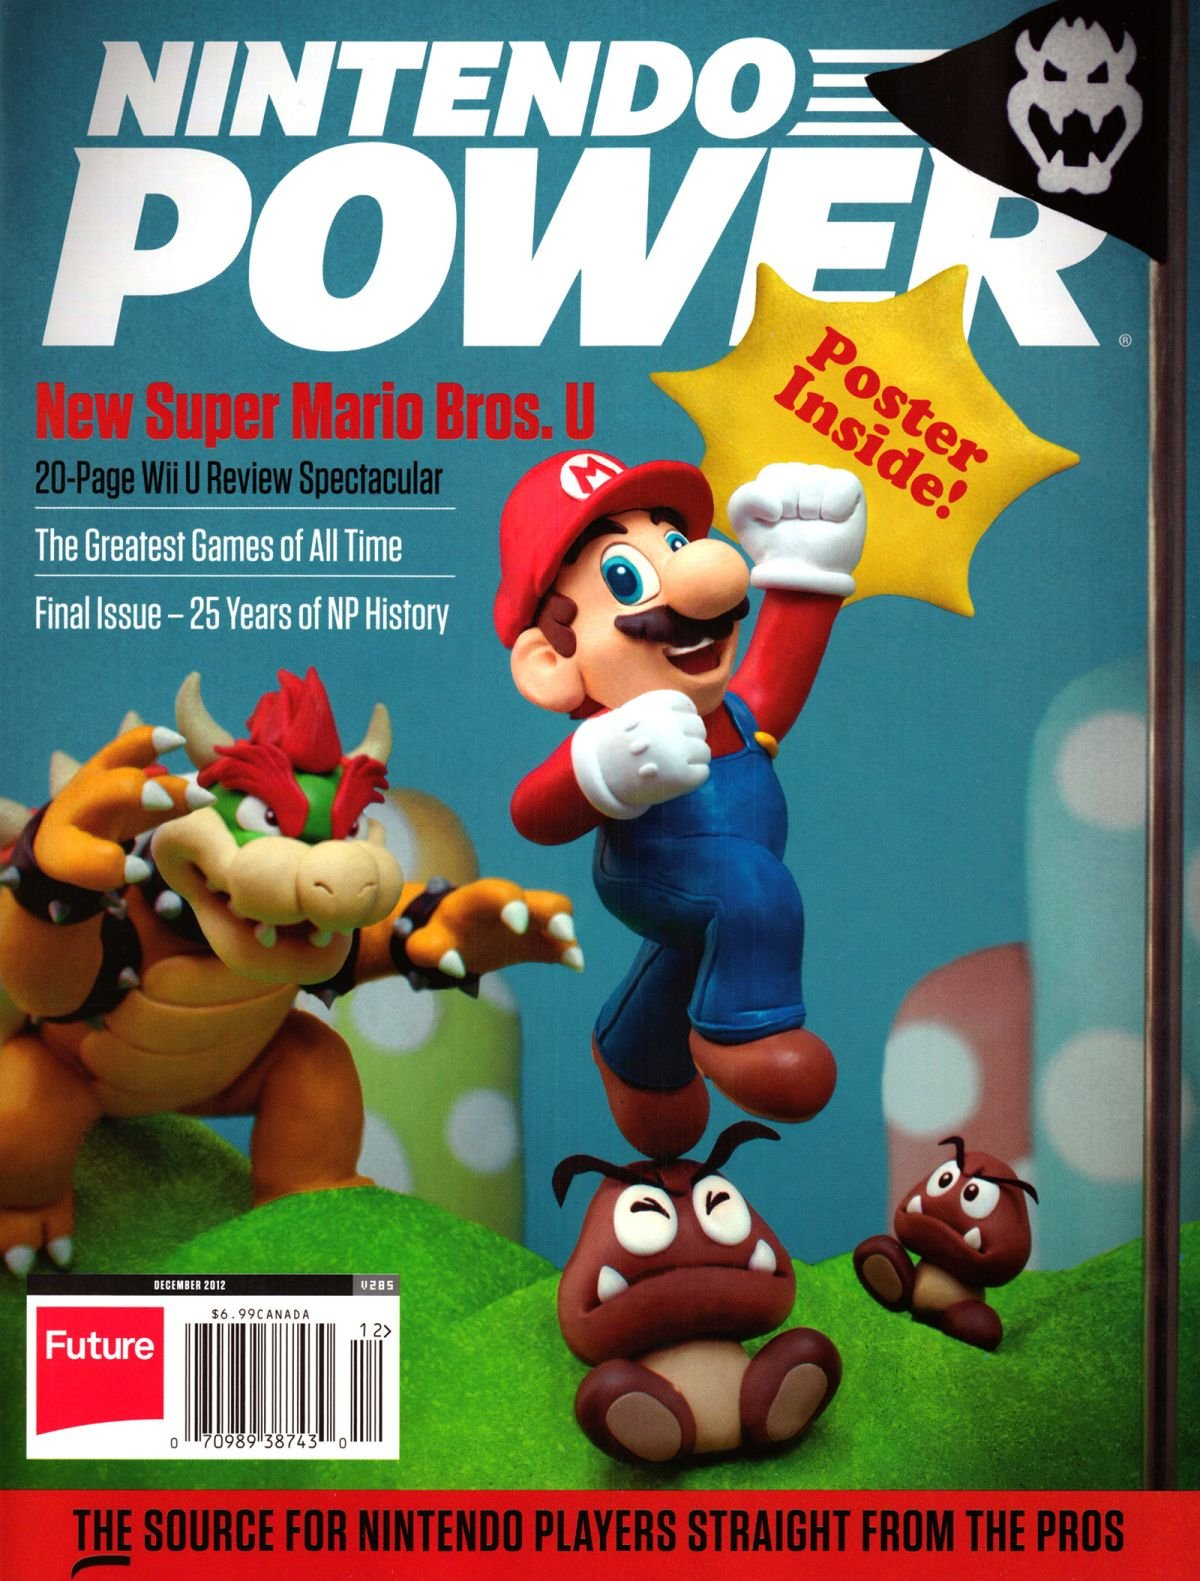 Nintendo Power Issue 285 December 2012 (Retail Cover)